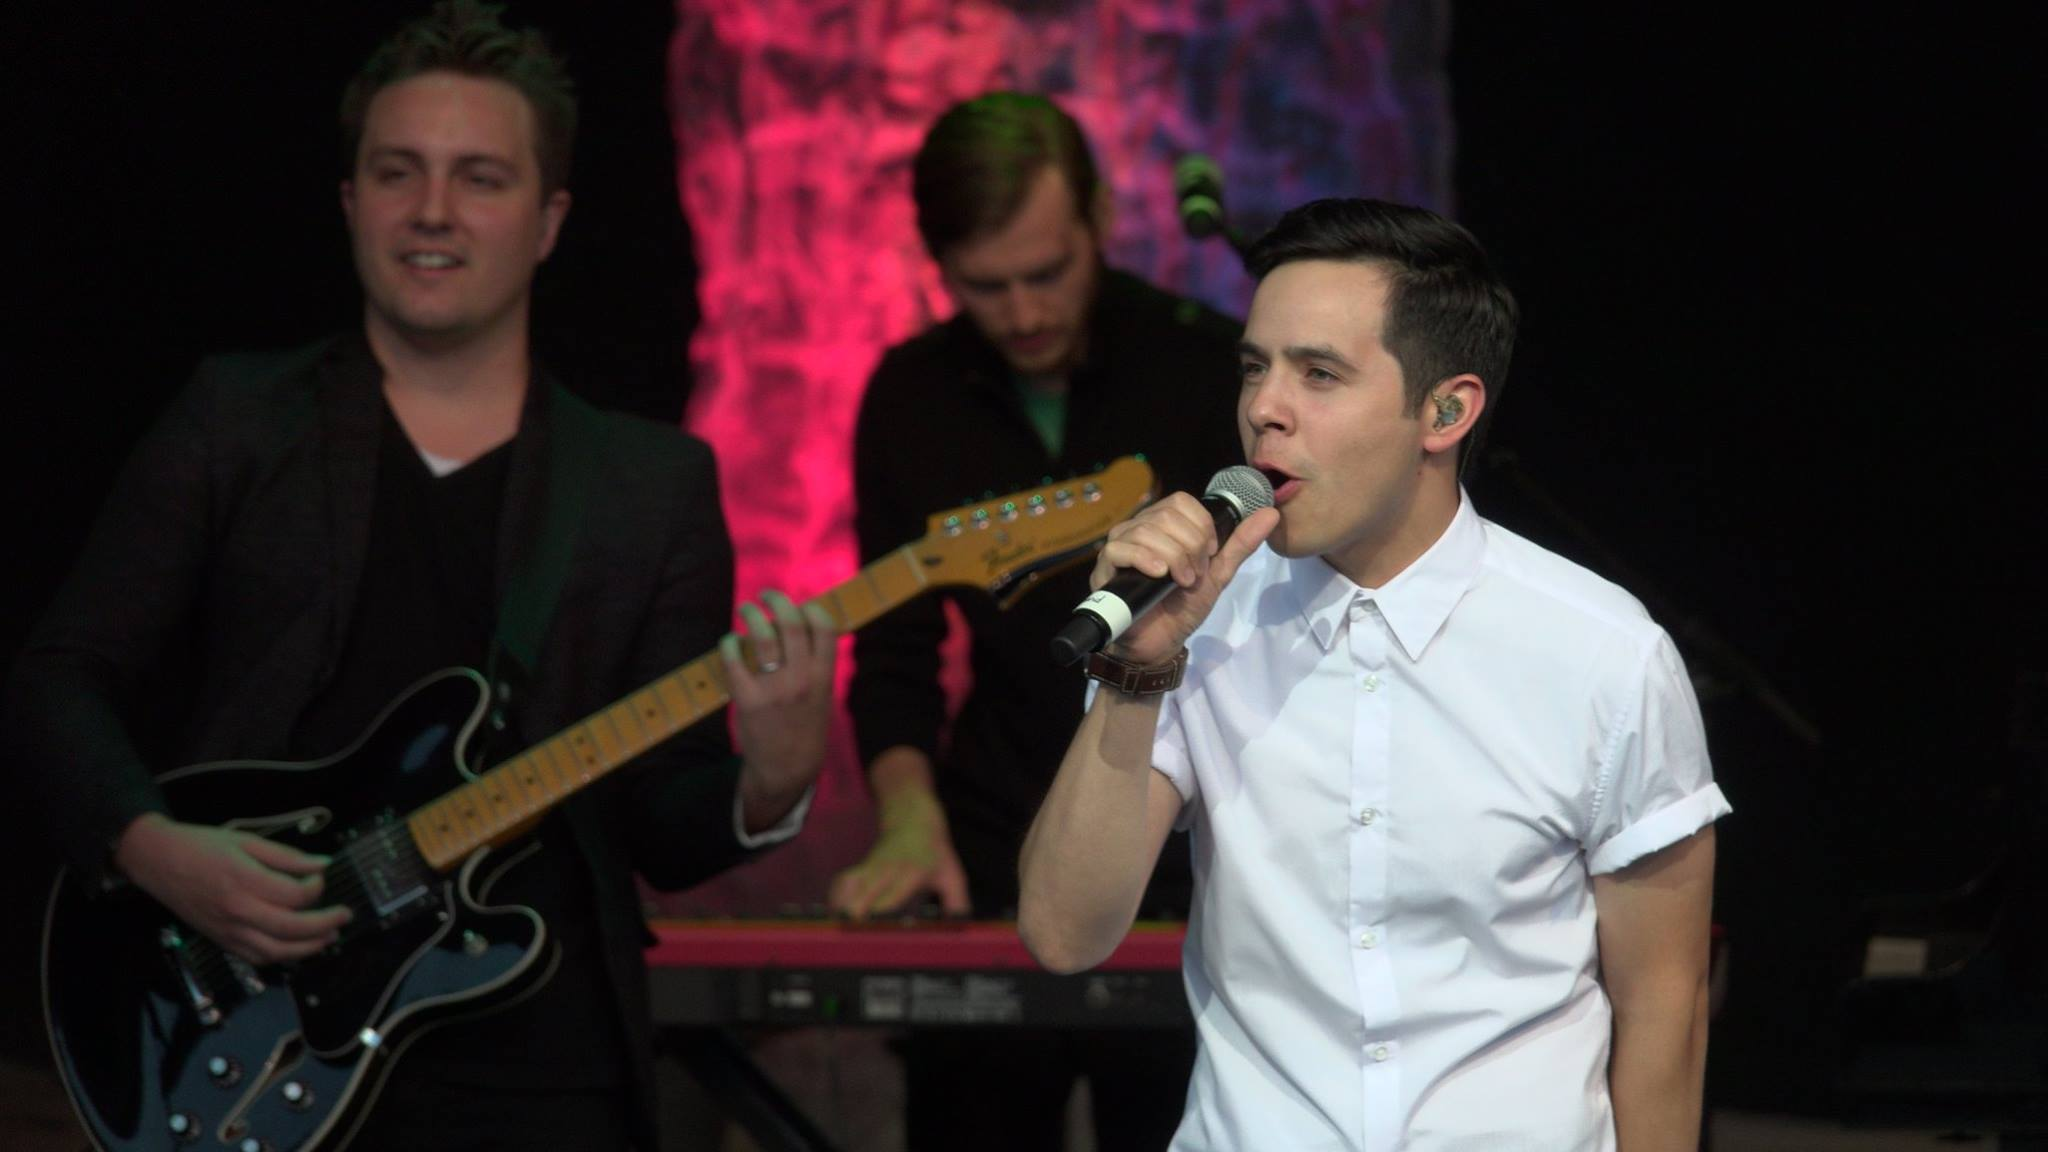 David Archuleta at the Sandy Ampitheater with Brady Bills and Chad Truman from the Sandy Amphitheater FB page